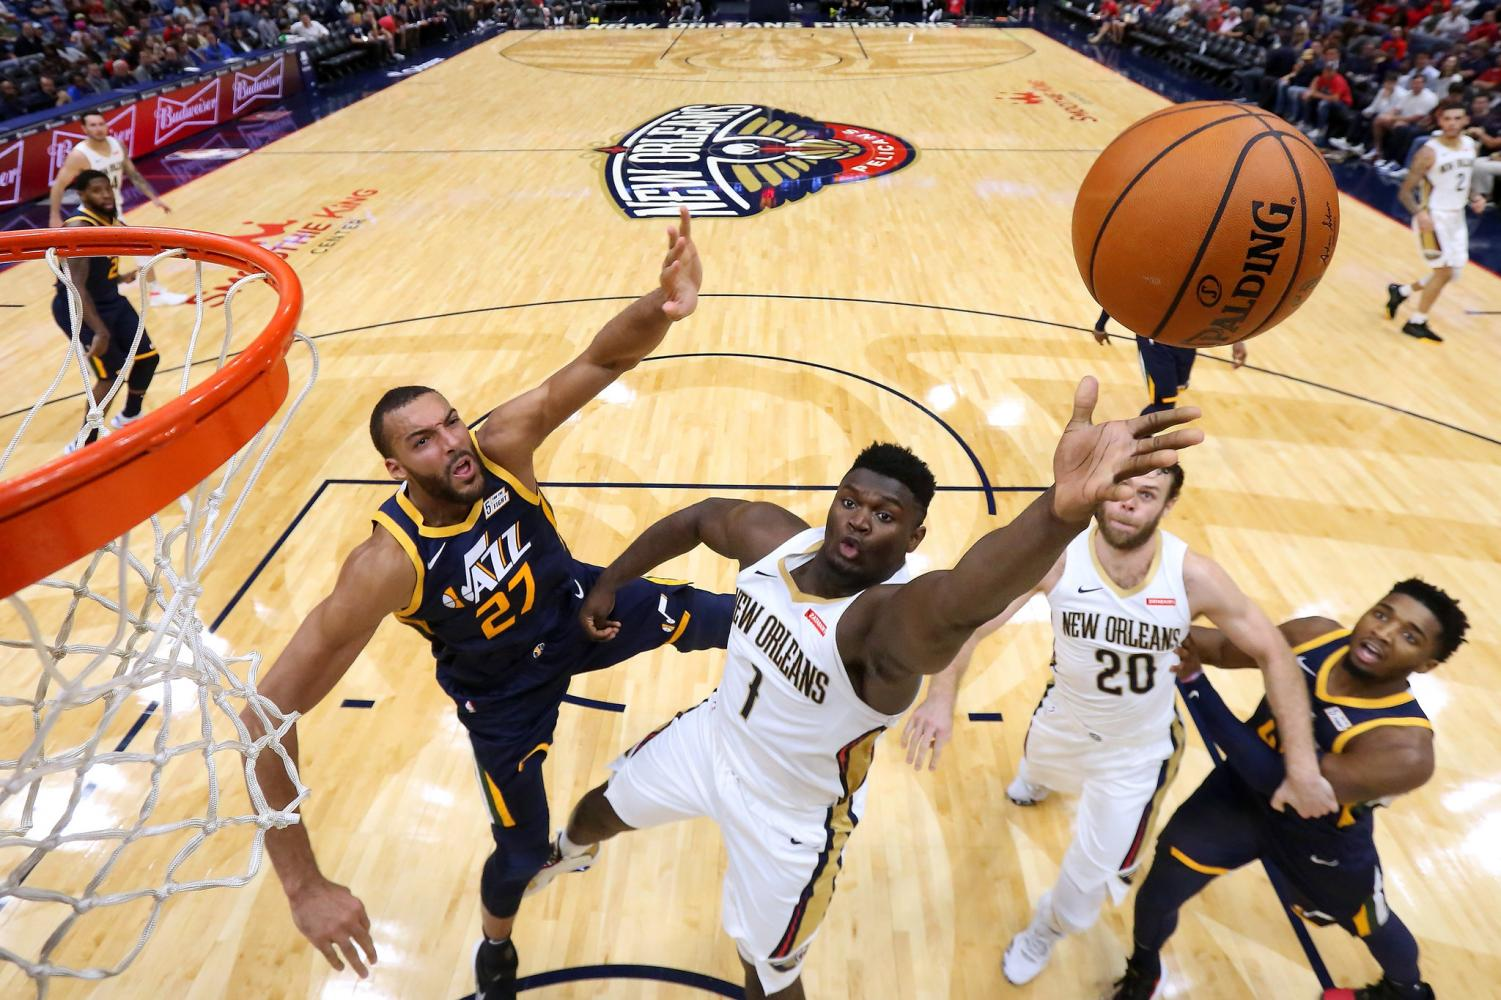 The NBA is expected to see a rise in competition as teams approach the Finals.